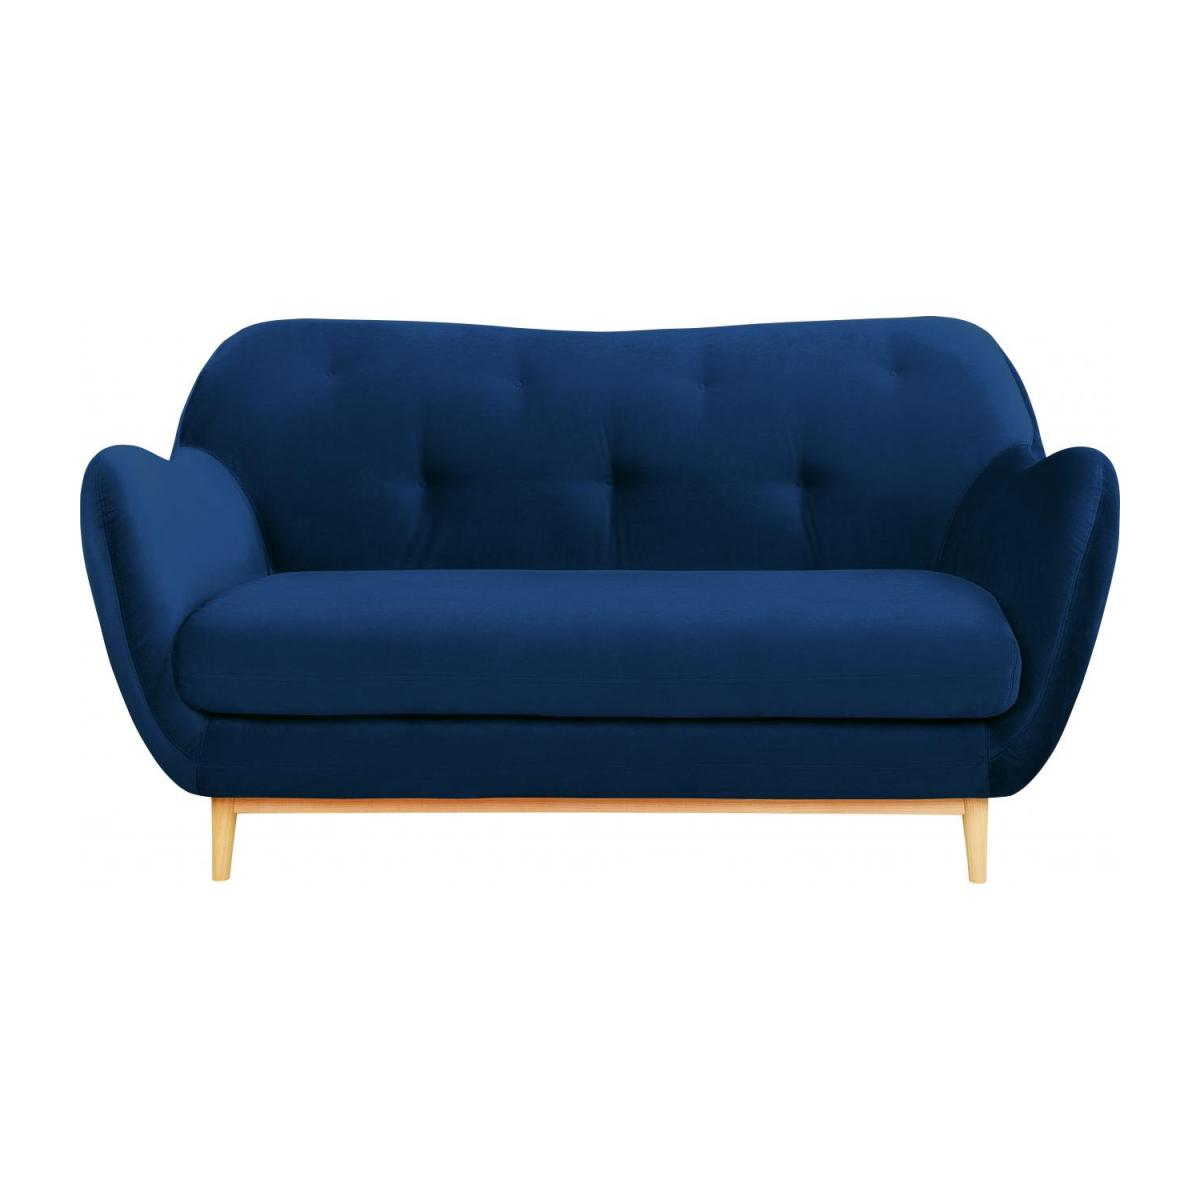 2-seat sofa made of velvet, blue n°2